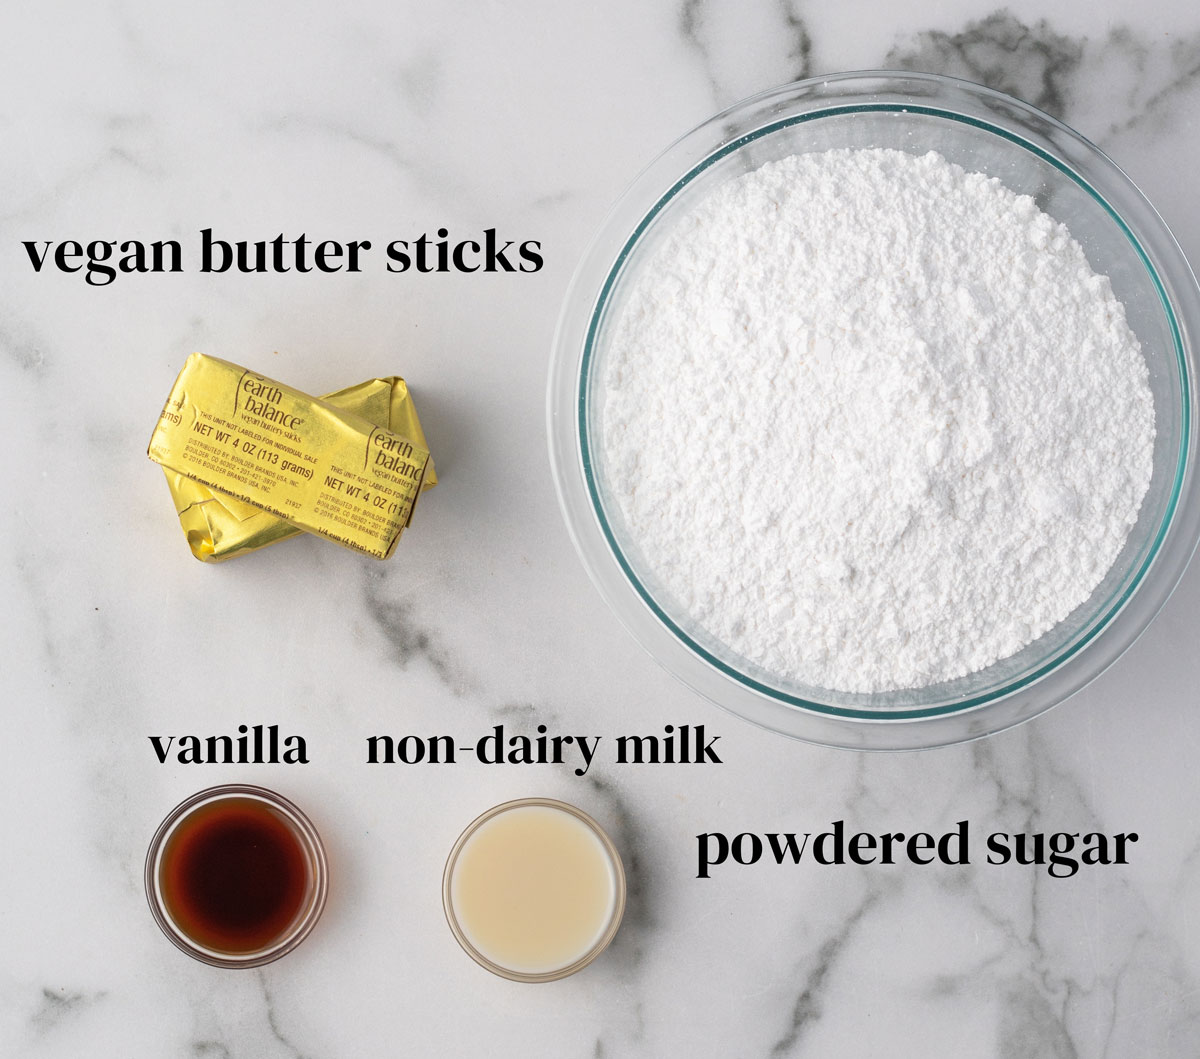 Ingredients for vegan buttercream frosting: powdered sugar, dairy-free butter, oat milk, & vanilla.